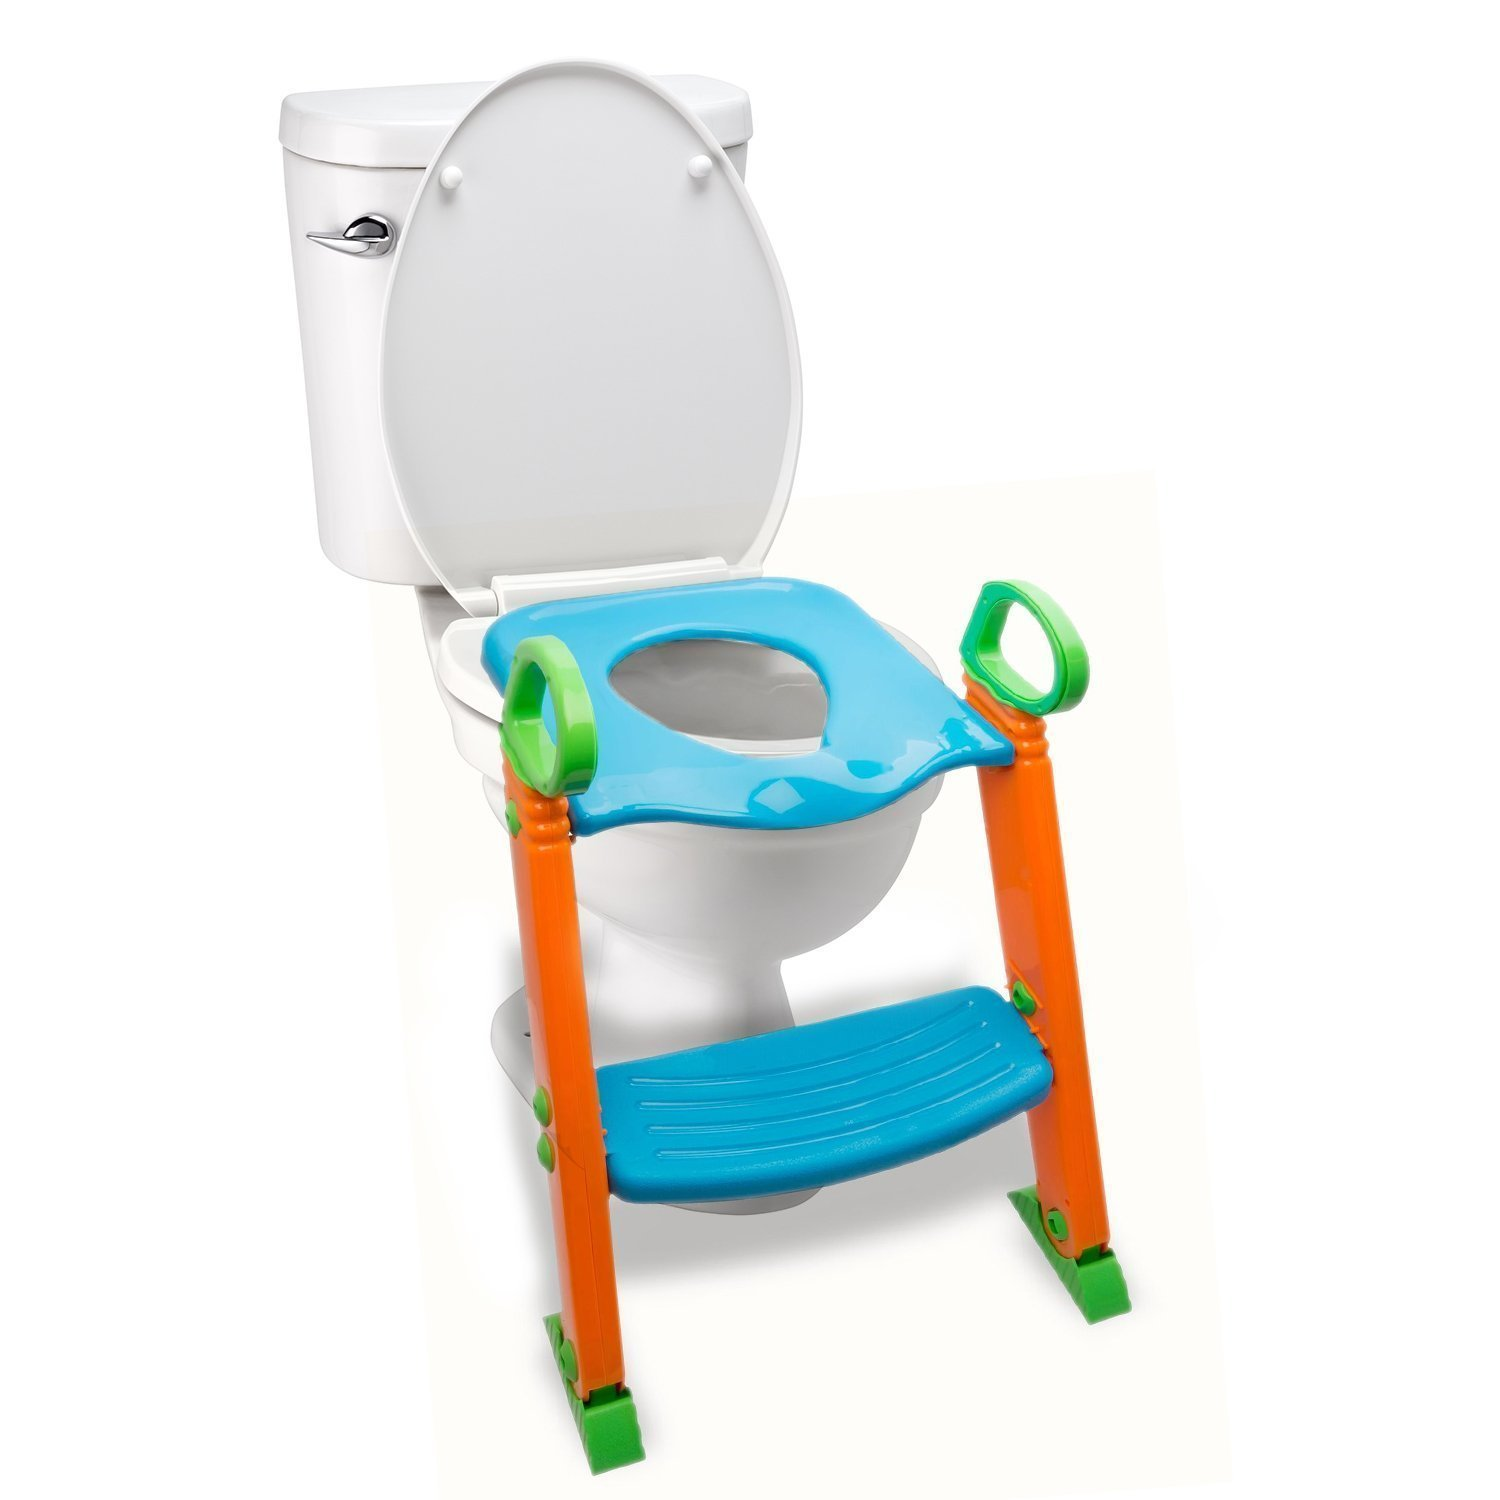 Potty Toilet Seat with Step Stool ladder, (3 in 1) Trainer for Kids Toddlers W/ Handles. Sturdy, Comfortable, Safe, Built In Non-Slip Steps W/ Anti-Slip Pads. Excellent Potty Seat Step Boys Girls Baby by Alayna (Image #1)